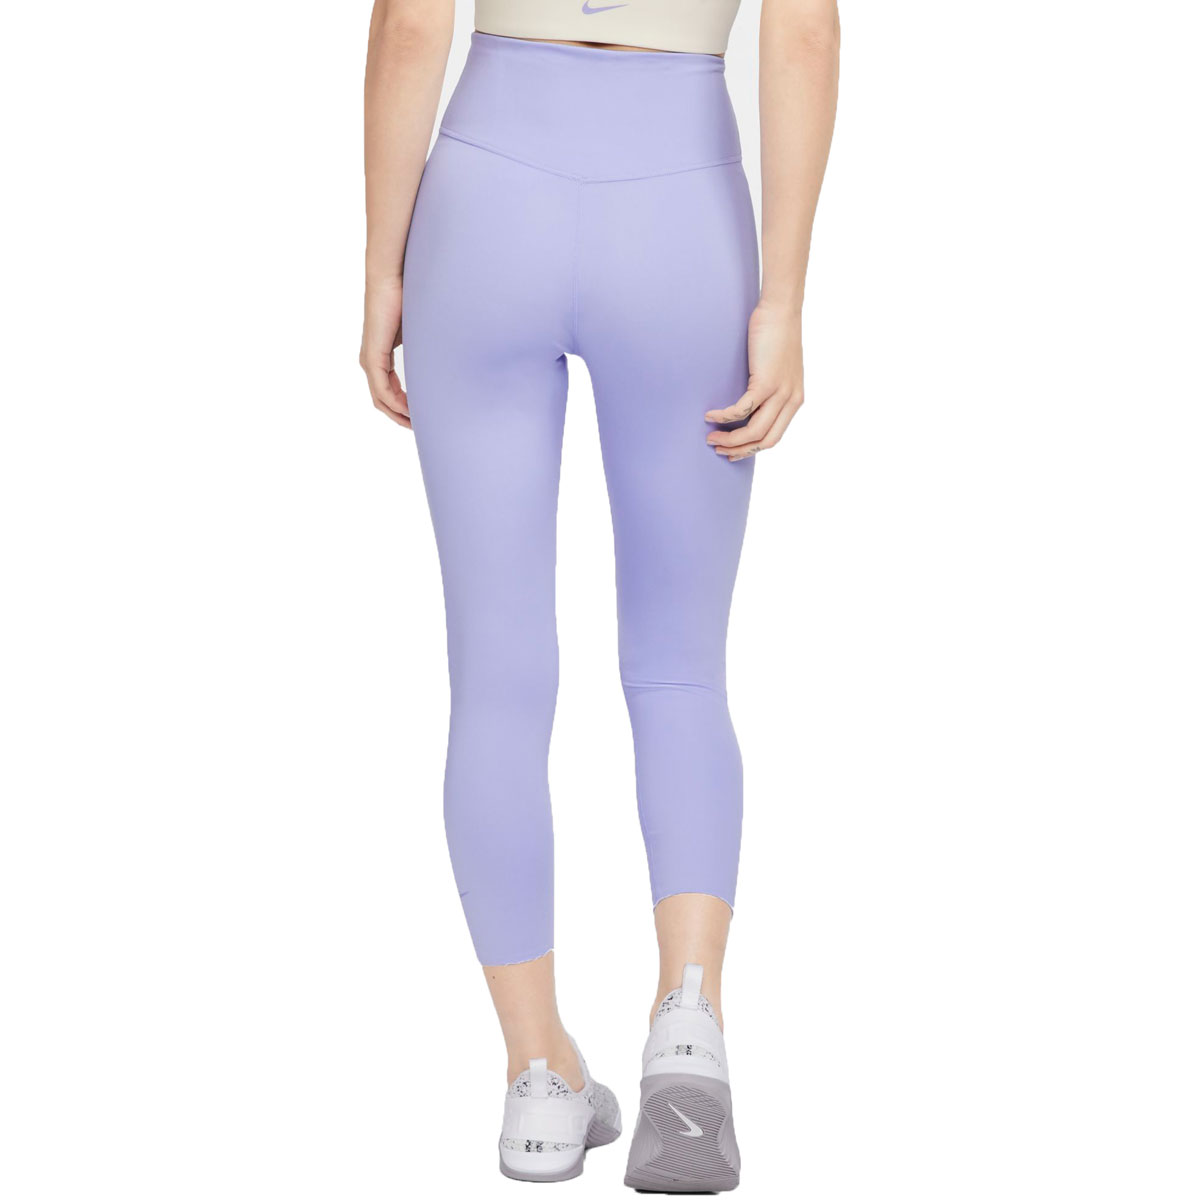 Women's Nike One Luxe Cropped Tights - Color: Light Thistle/Clear - Size: XS, Light Thistle/Clear, large, image 2